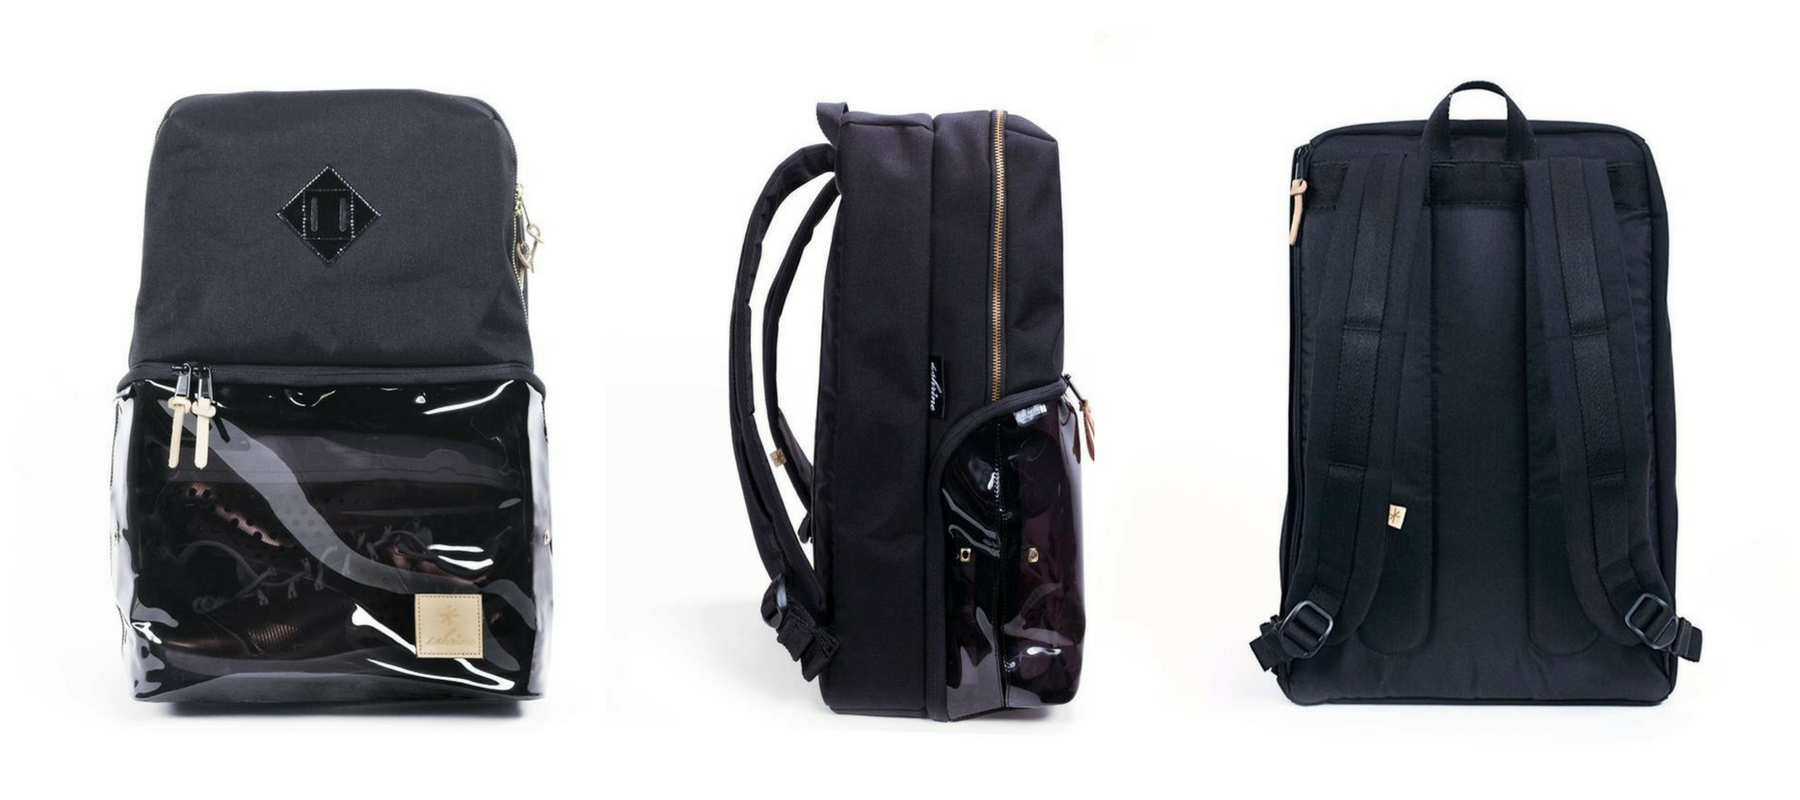 The Shrine Sneaker Daypack: Smoked Translucent & Black